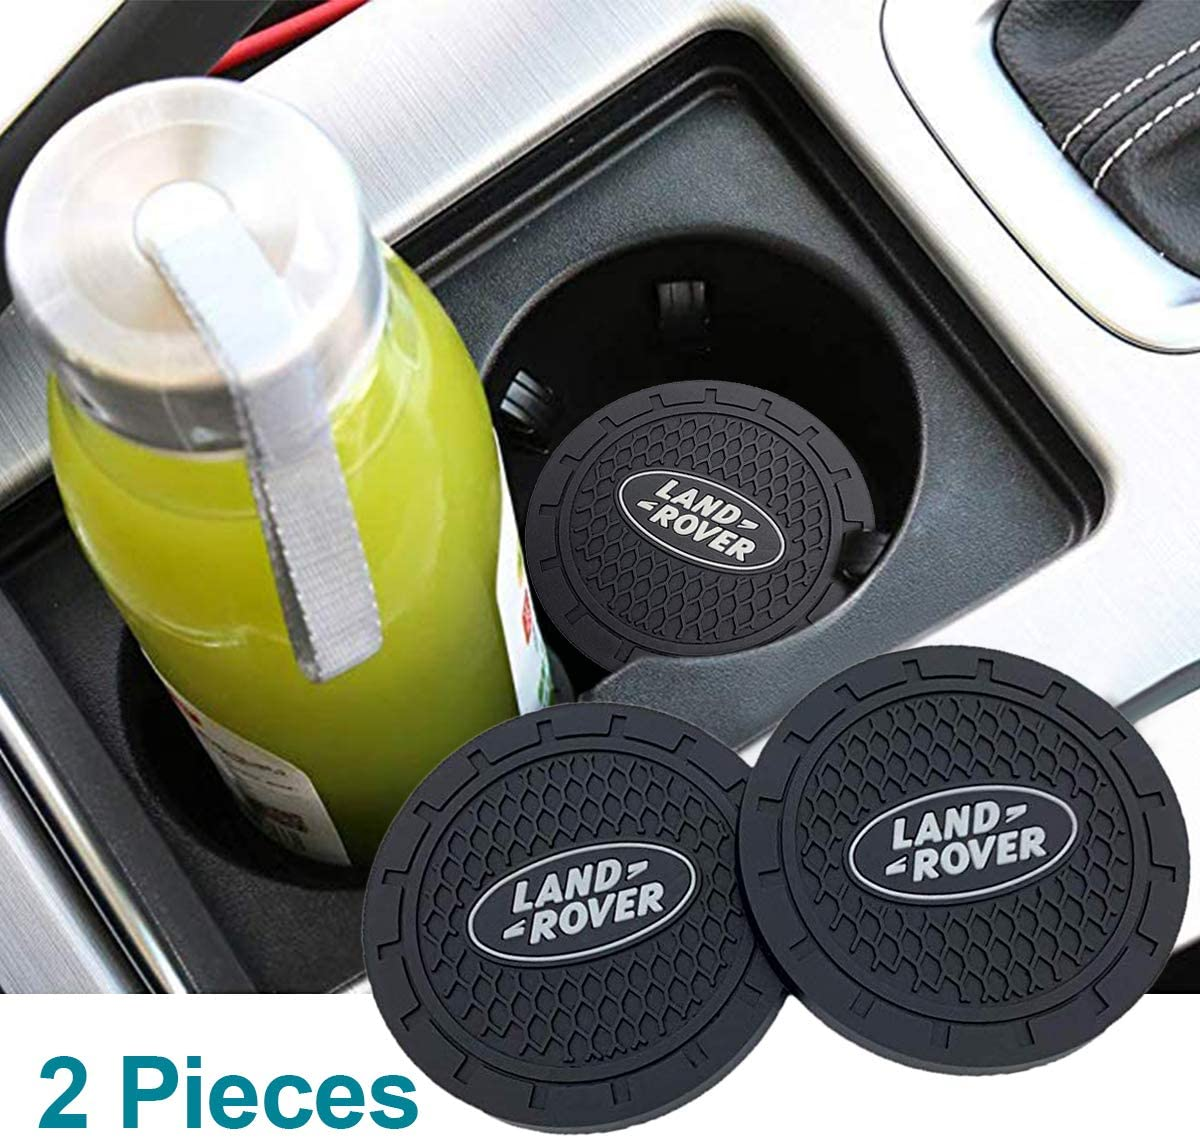 Wall Stickz car Sales 2.75 Inch Diameter Oval Tough Car Logo Vehicle Travel Auto Cup Holder Insert Coaster Can 2 Pcs Pack (fit Land Rover)